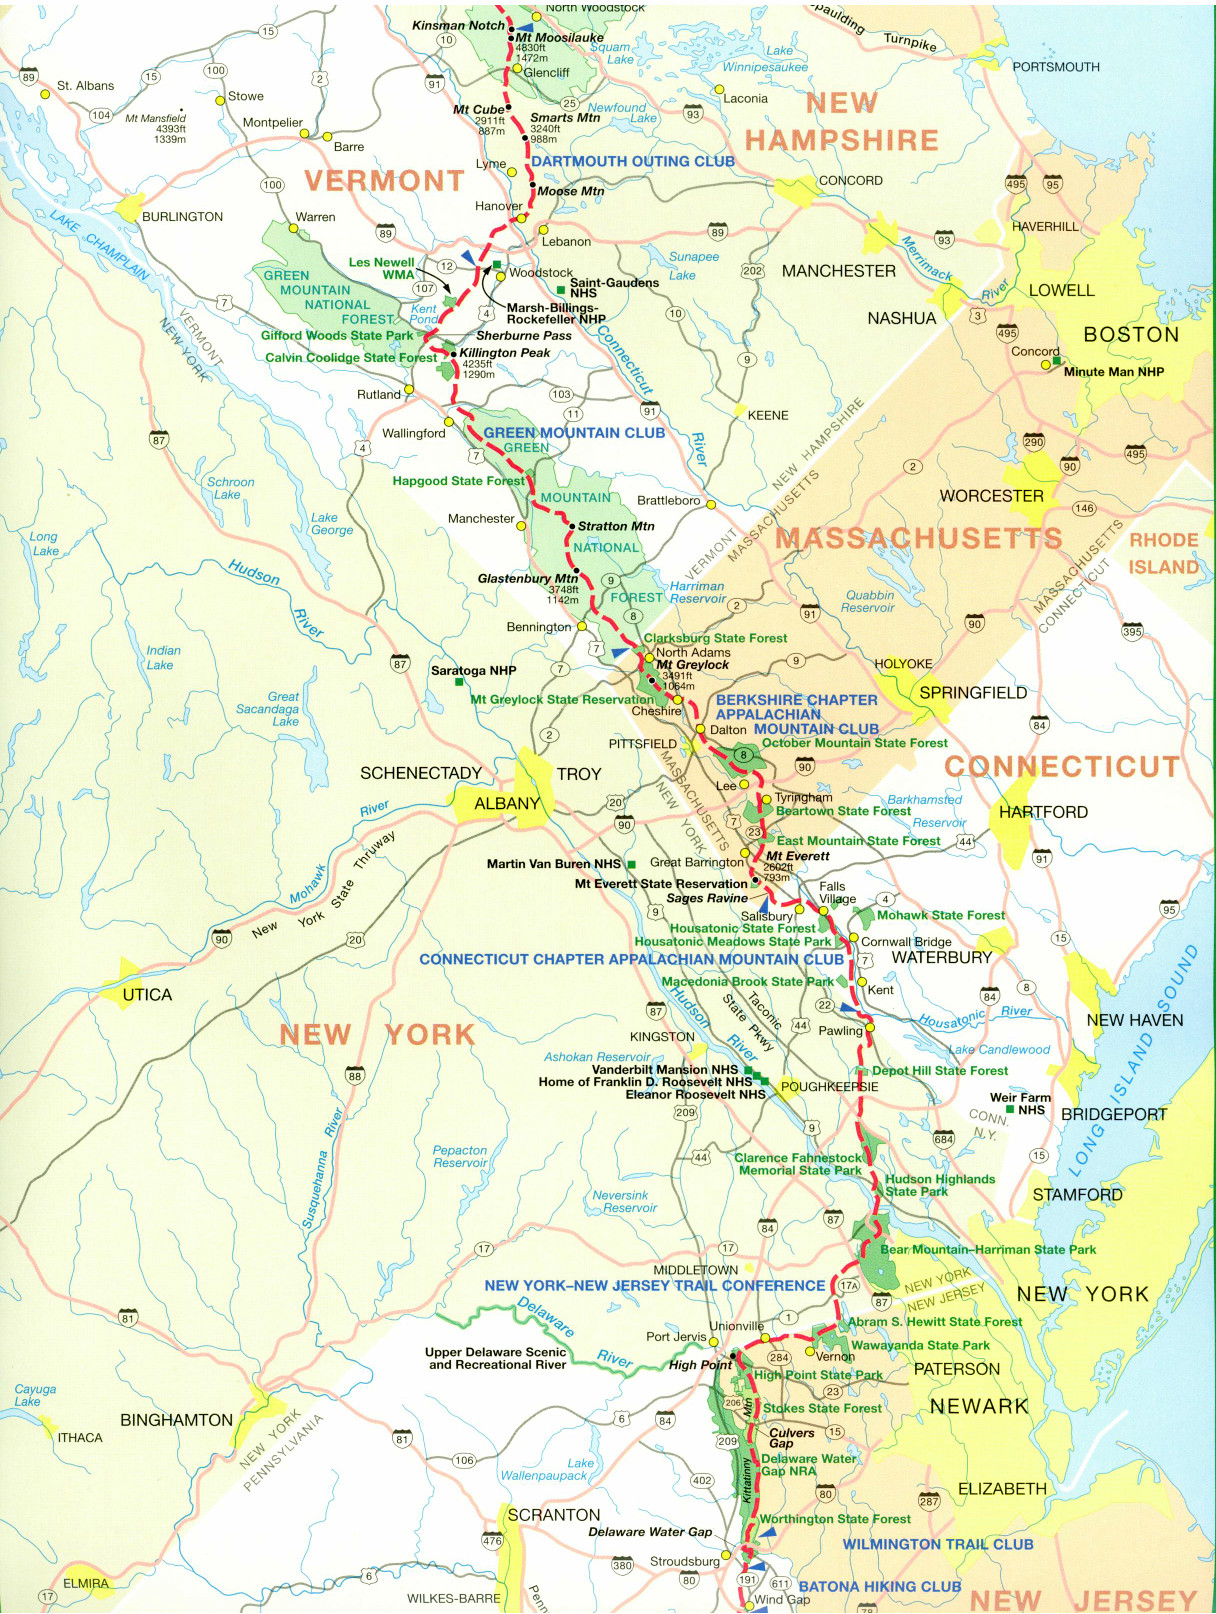 Official Appalachian Trail Maps on map of ny towns, map york pa, map of new jersey and pennsylvania border, map of ny and pennsylvania, map of western pennsylvania railroads, map of pennsylvania pa, map of upstate new york, map of ohio and ny, map ohio pennsylvania and new york, map of ma and ny, map of pennsylvania with cities, map of ny and ct, map of connecticut and new york new jersey, new york map binghamton ny, map of nj ny border, map of westfield pa, map of western pa, map of vt and ny, map of pennsylvania and new york state, map of nc and ny,